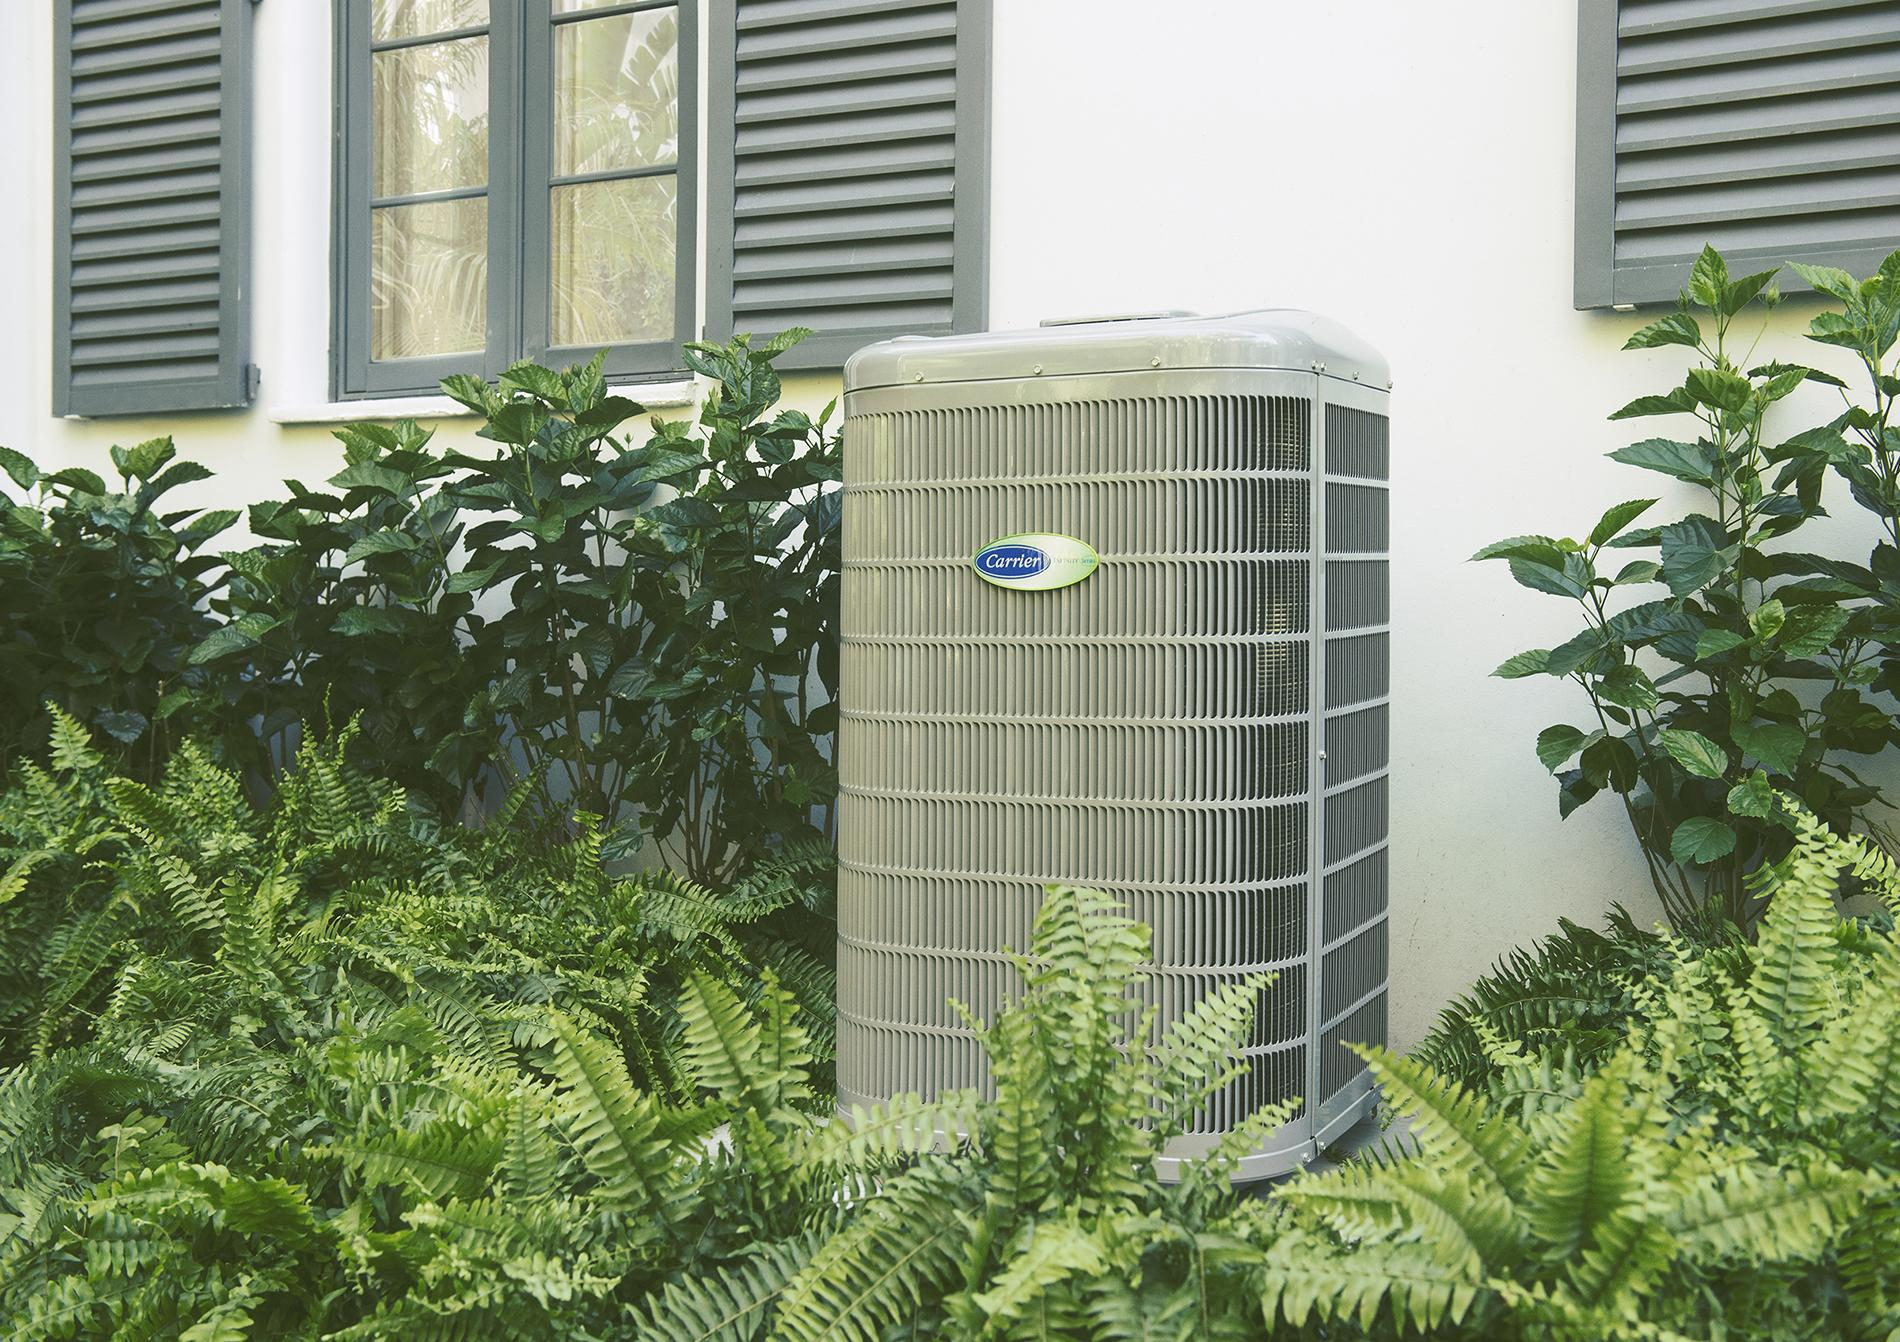 North Carolina's central air installation contractor